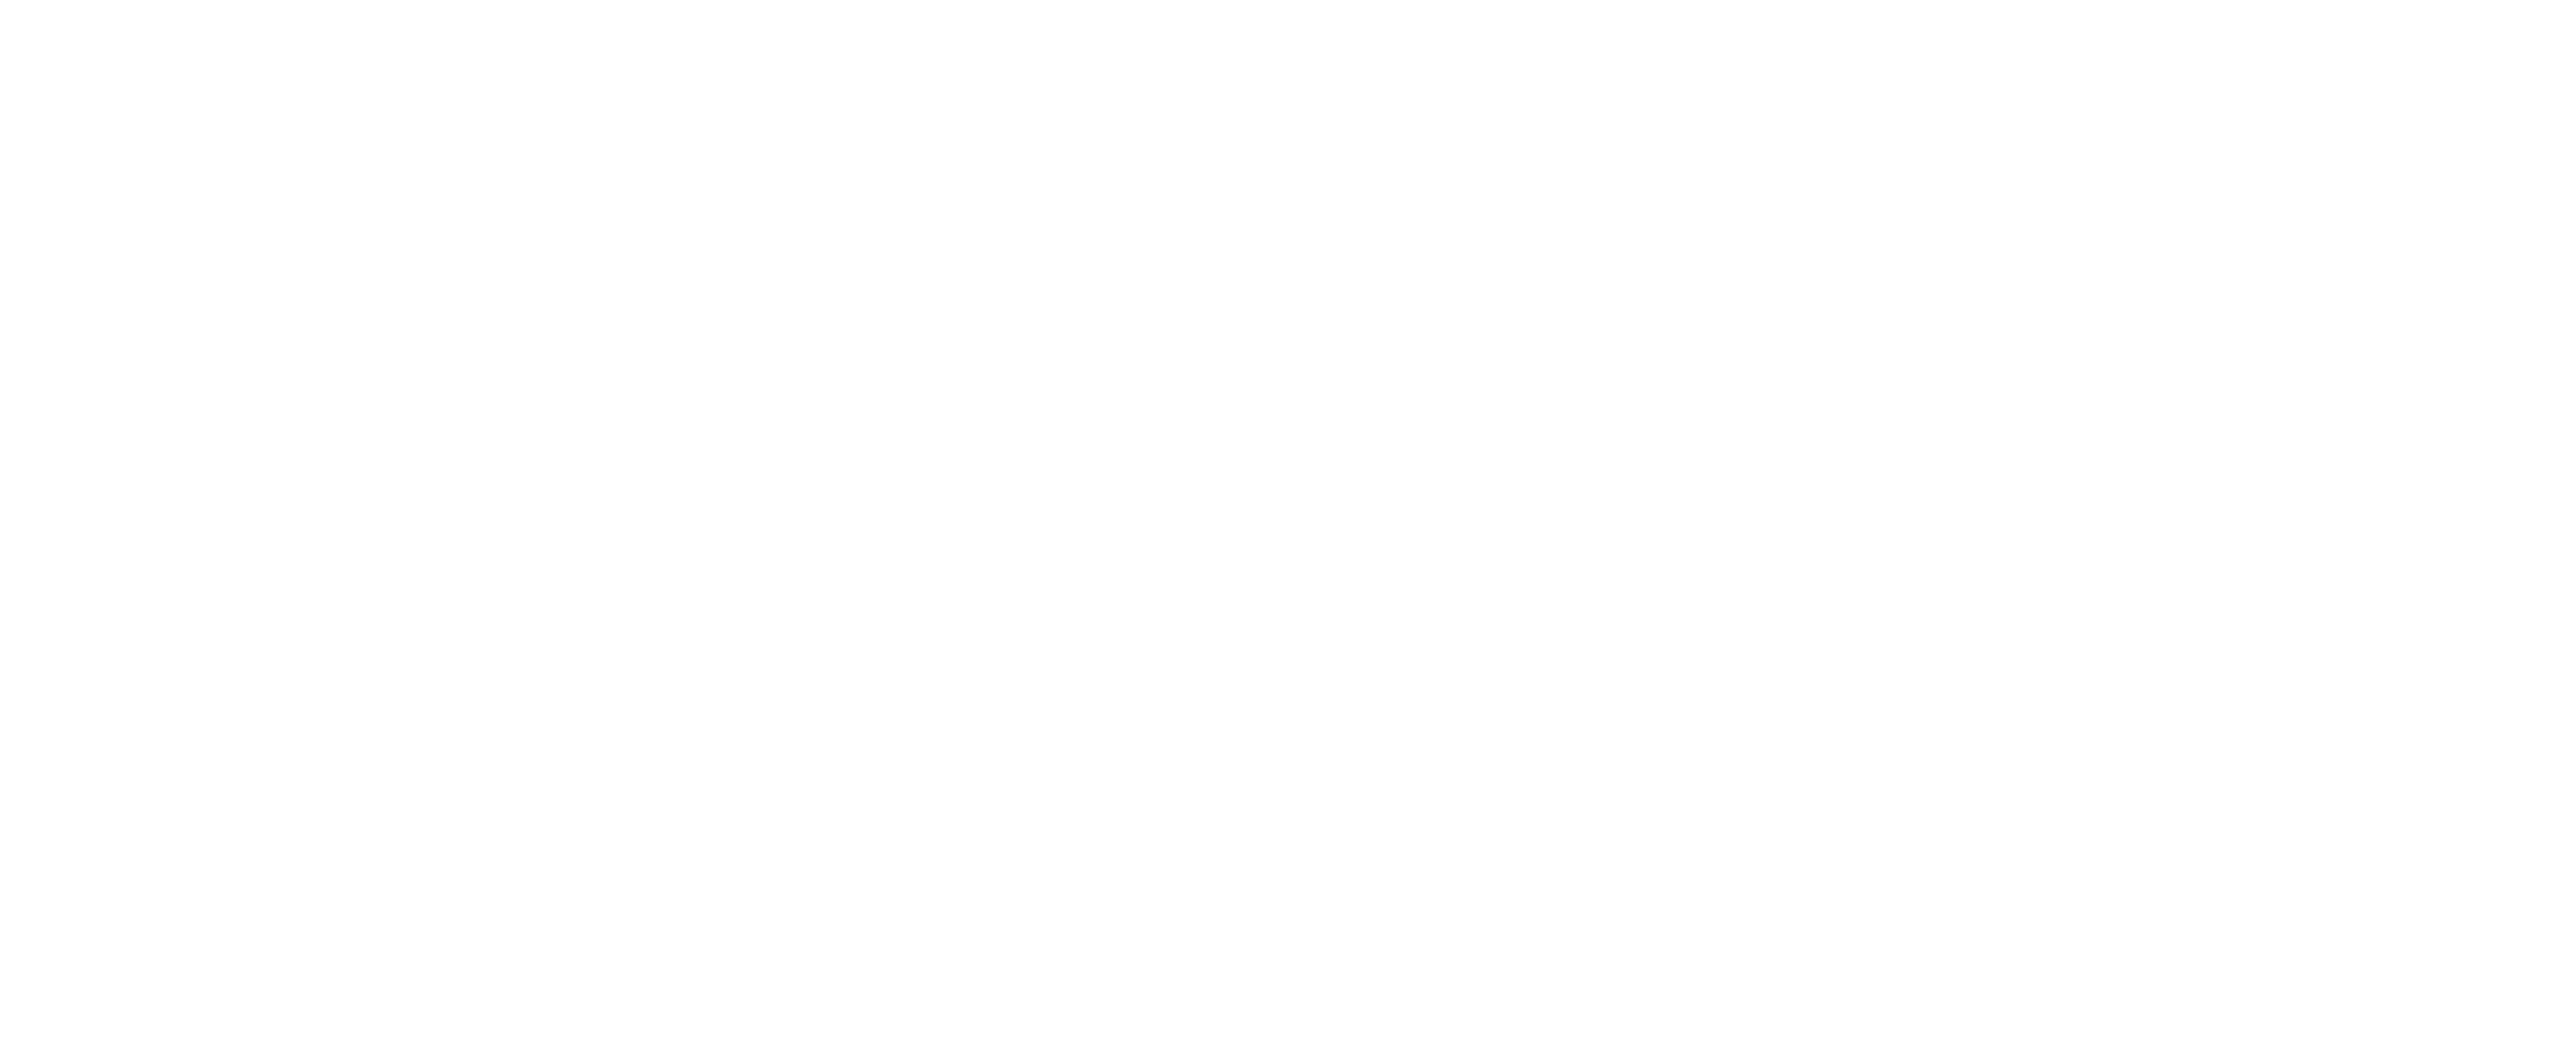 xero-partner-certified.png